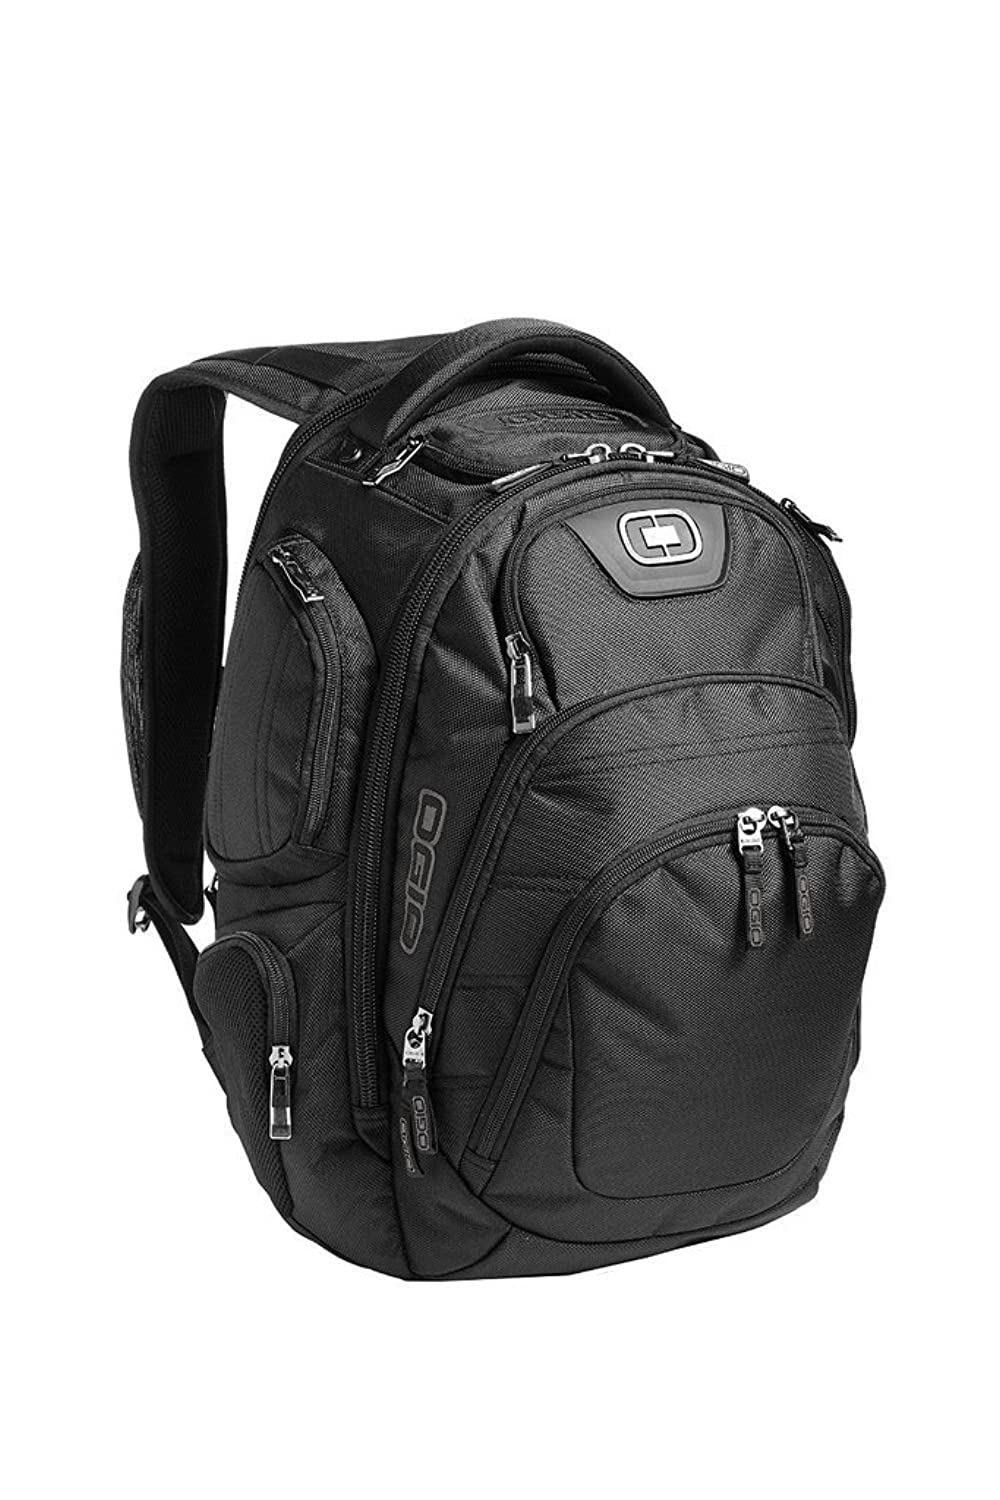 Are Ogio Backpacks Good | Frog Backpack